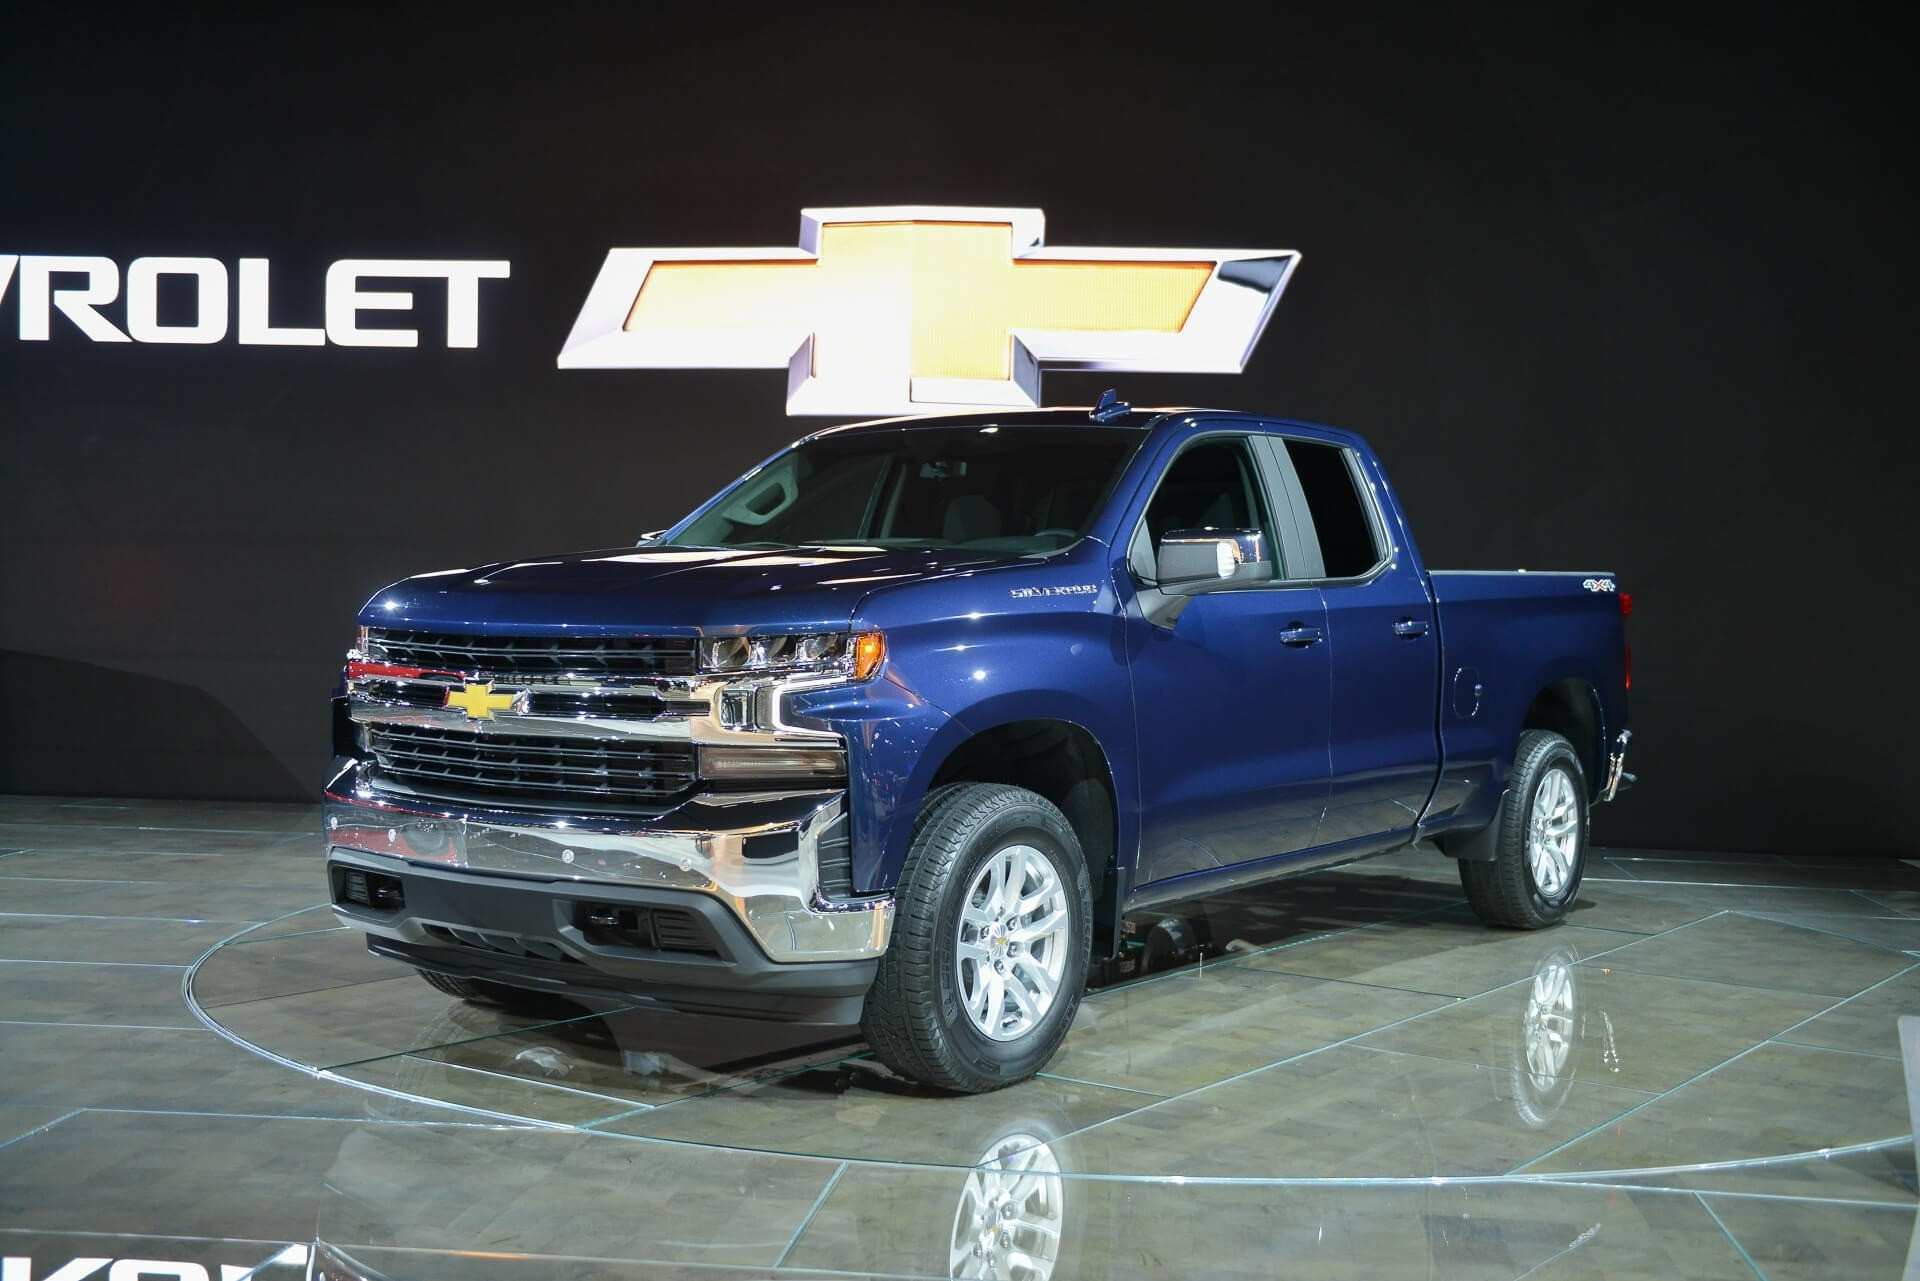 54 New 2020 Chevy Tahoe Z71 Ss Pricing for 2020 Chevy Tahoe Z71 Ss